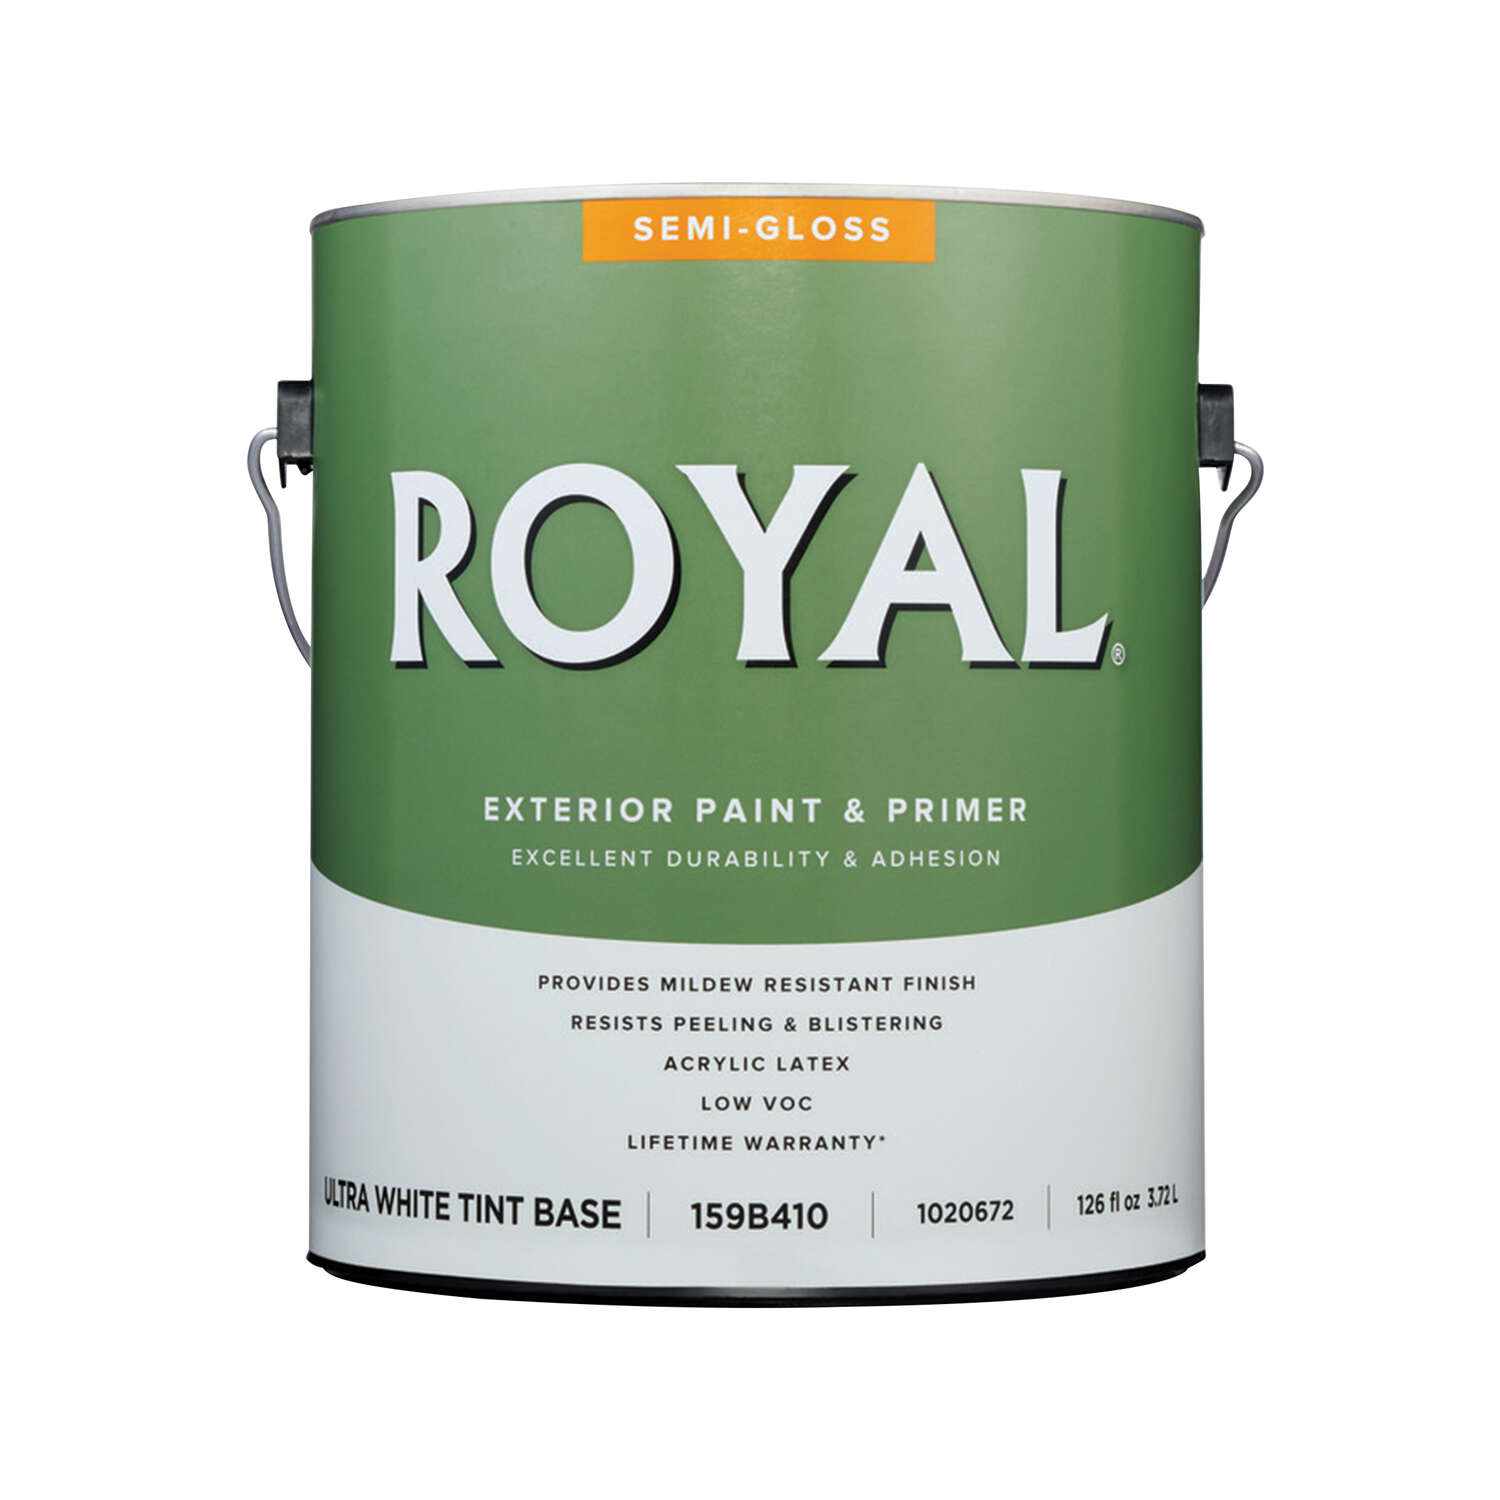 Royal  Semi-Gloss  Tint Base  Ultra White Base  Paint  Exterior  1 gal.